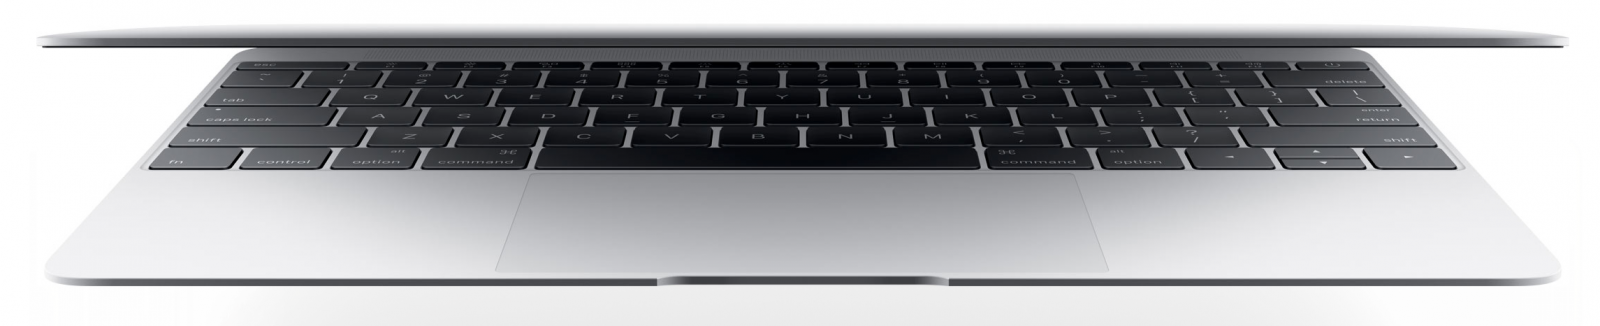 MacBook (2015) Review - design